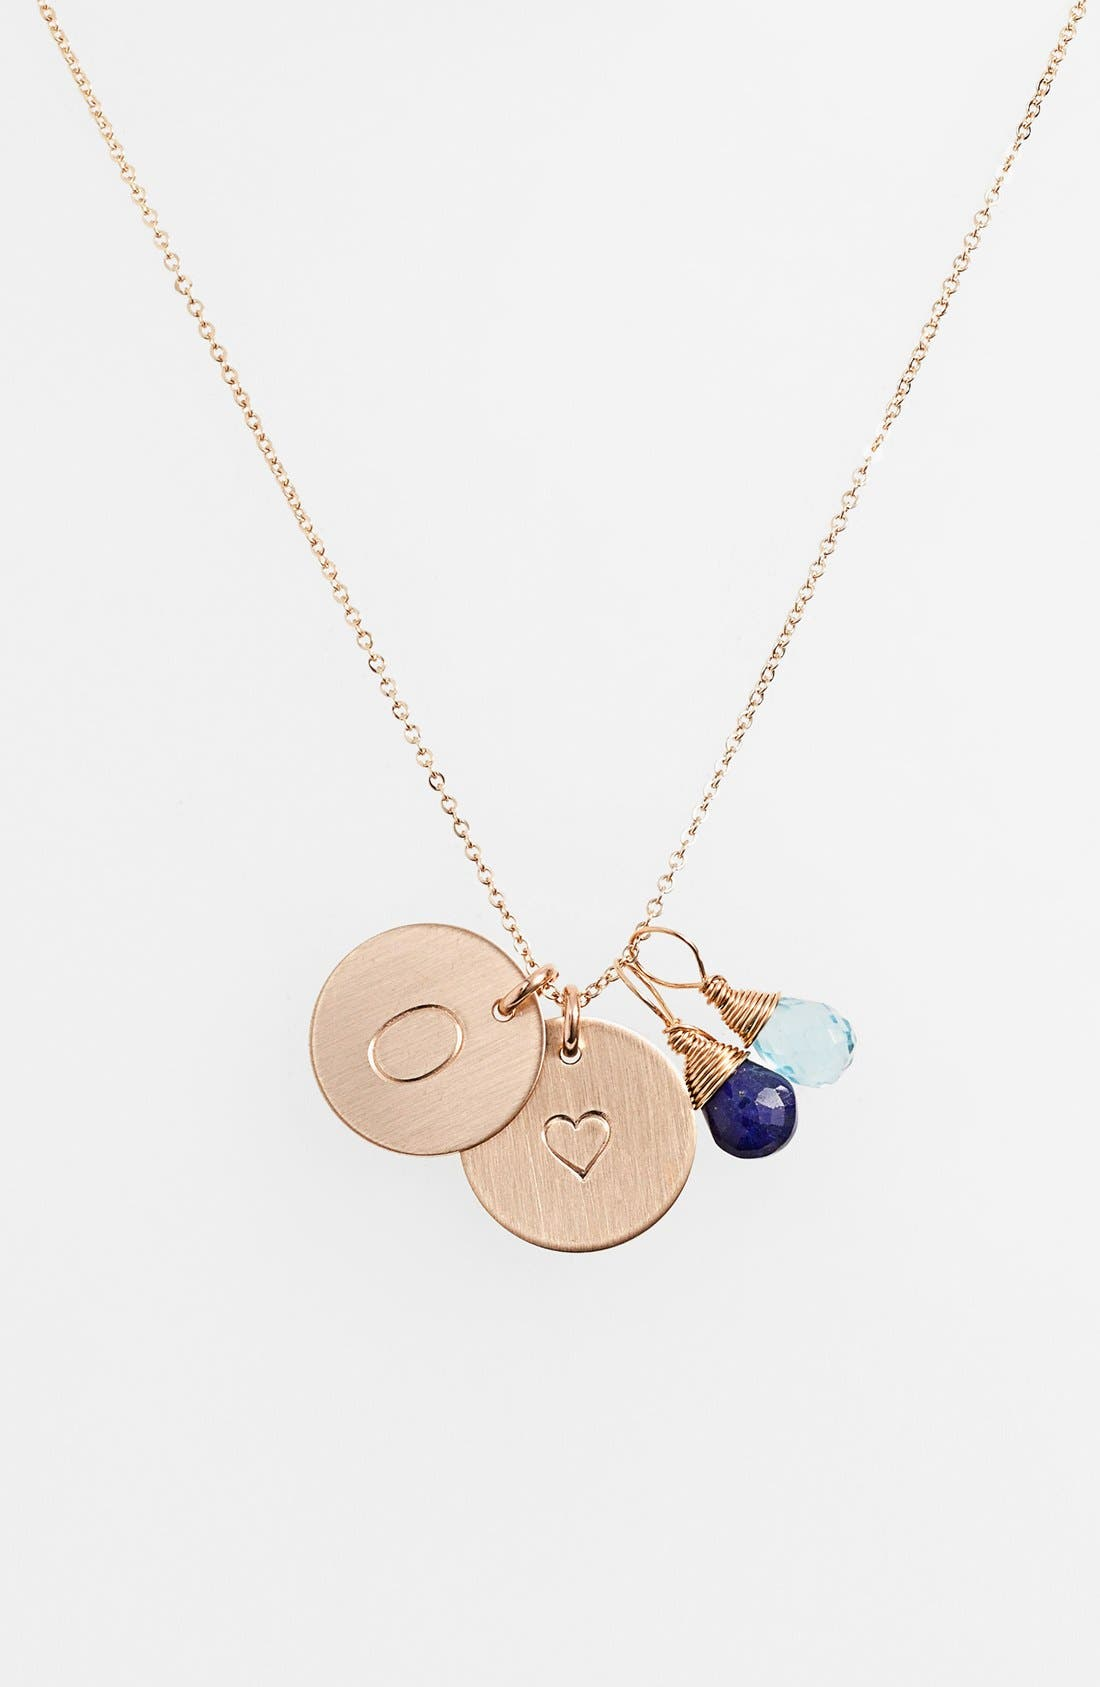 NASHELLE Blue Quartz Initial & Heart 14k-Gold Fill Disc Necklace, Main, color, ROYAL BLUE AND OCEAN BLUE O